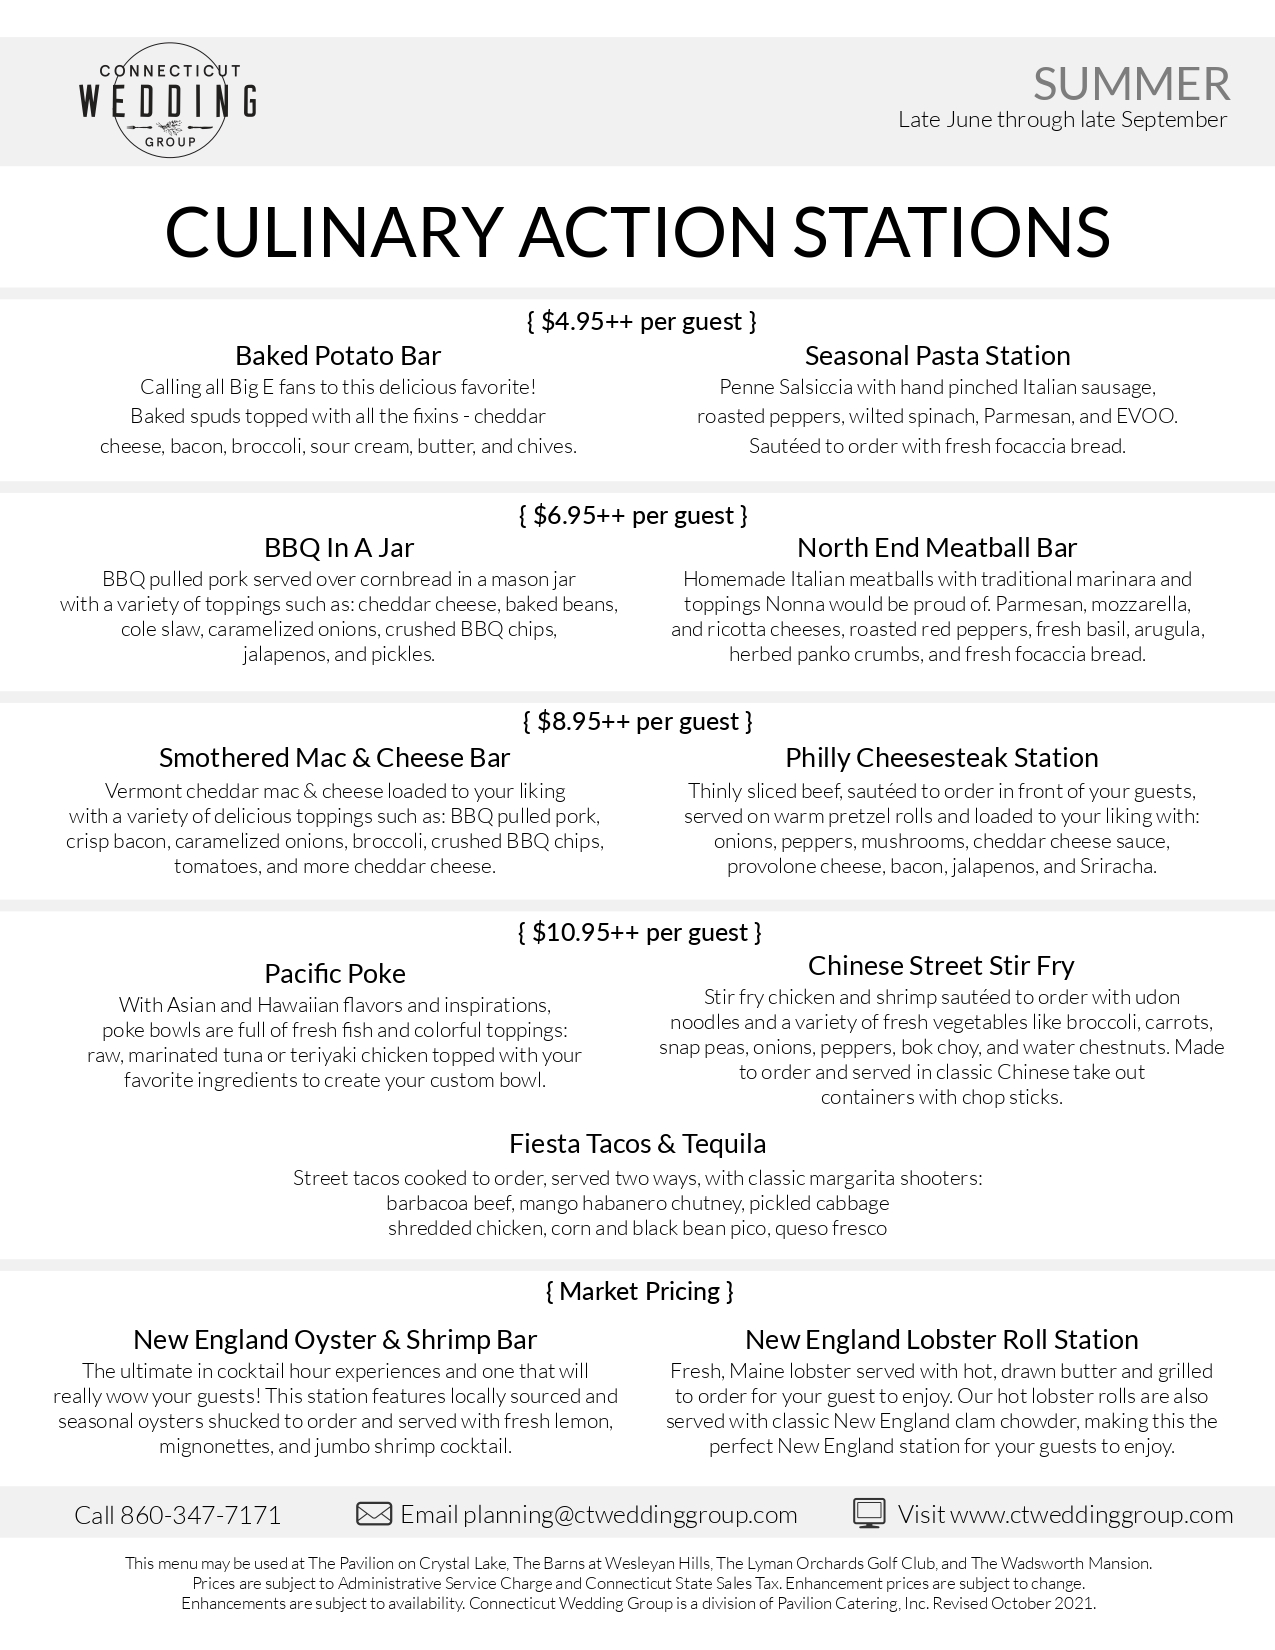 Summer-Cocktail-Hour-Culinary-Experiences-2022_NEW_page-0002